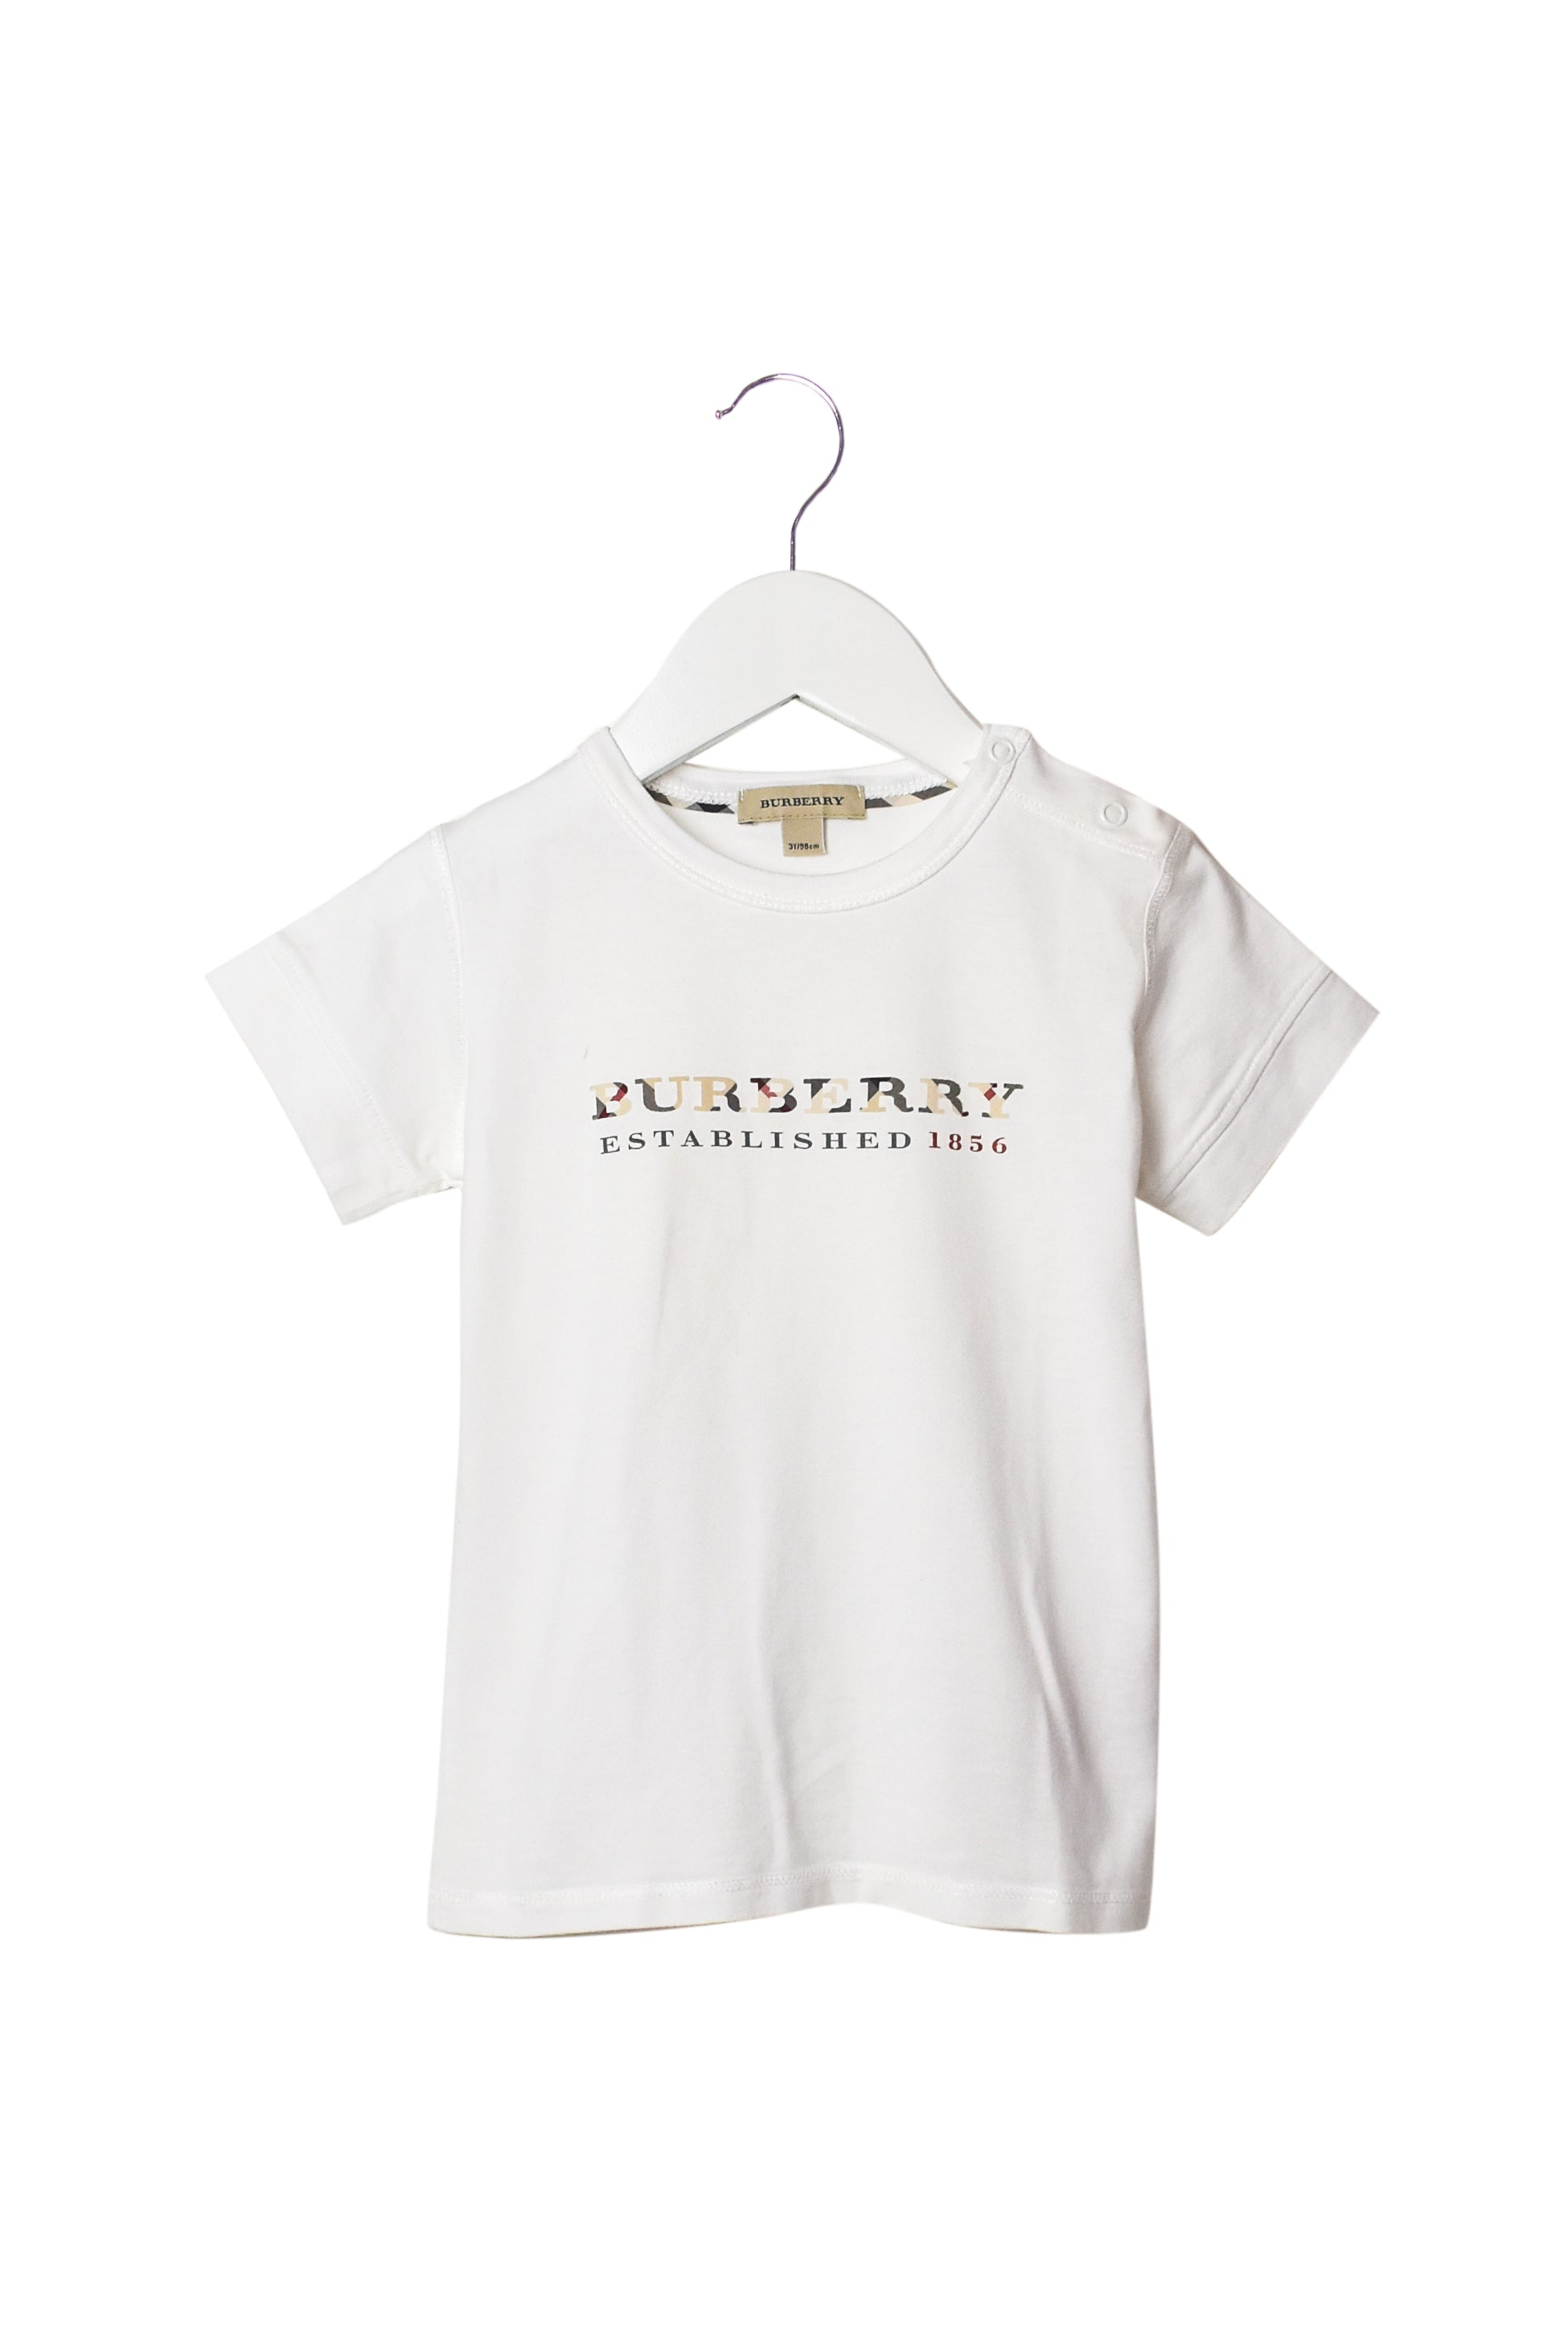 10006804 Burberry Kids~ T-shirt 3T at Retykle